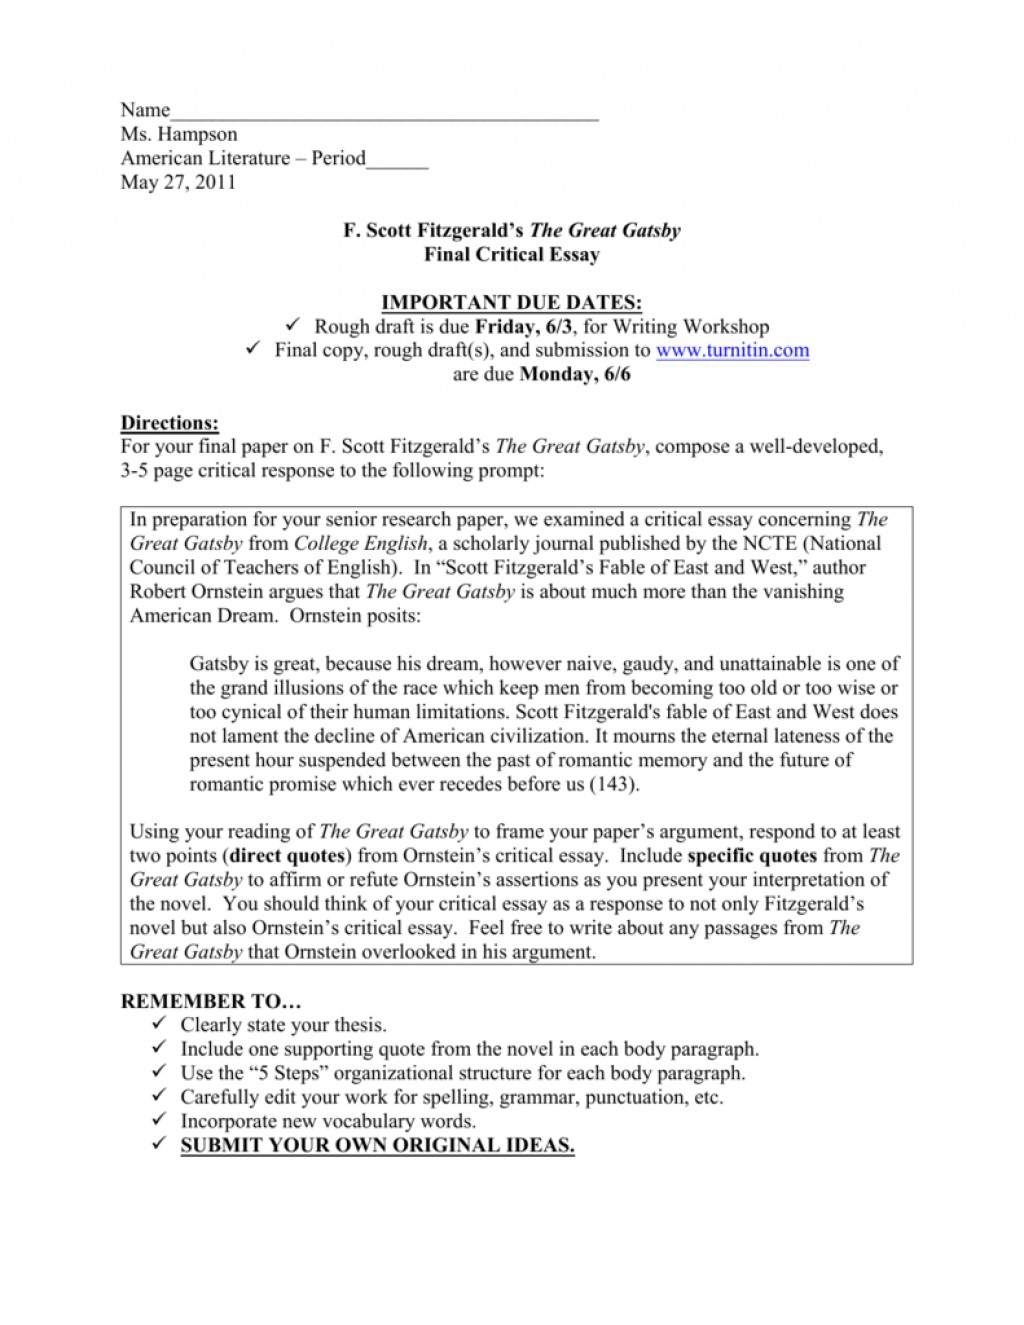 003 Essay Example Great Gatsby American Fantastic Dream Conclusion The Pdf Free Large